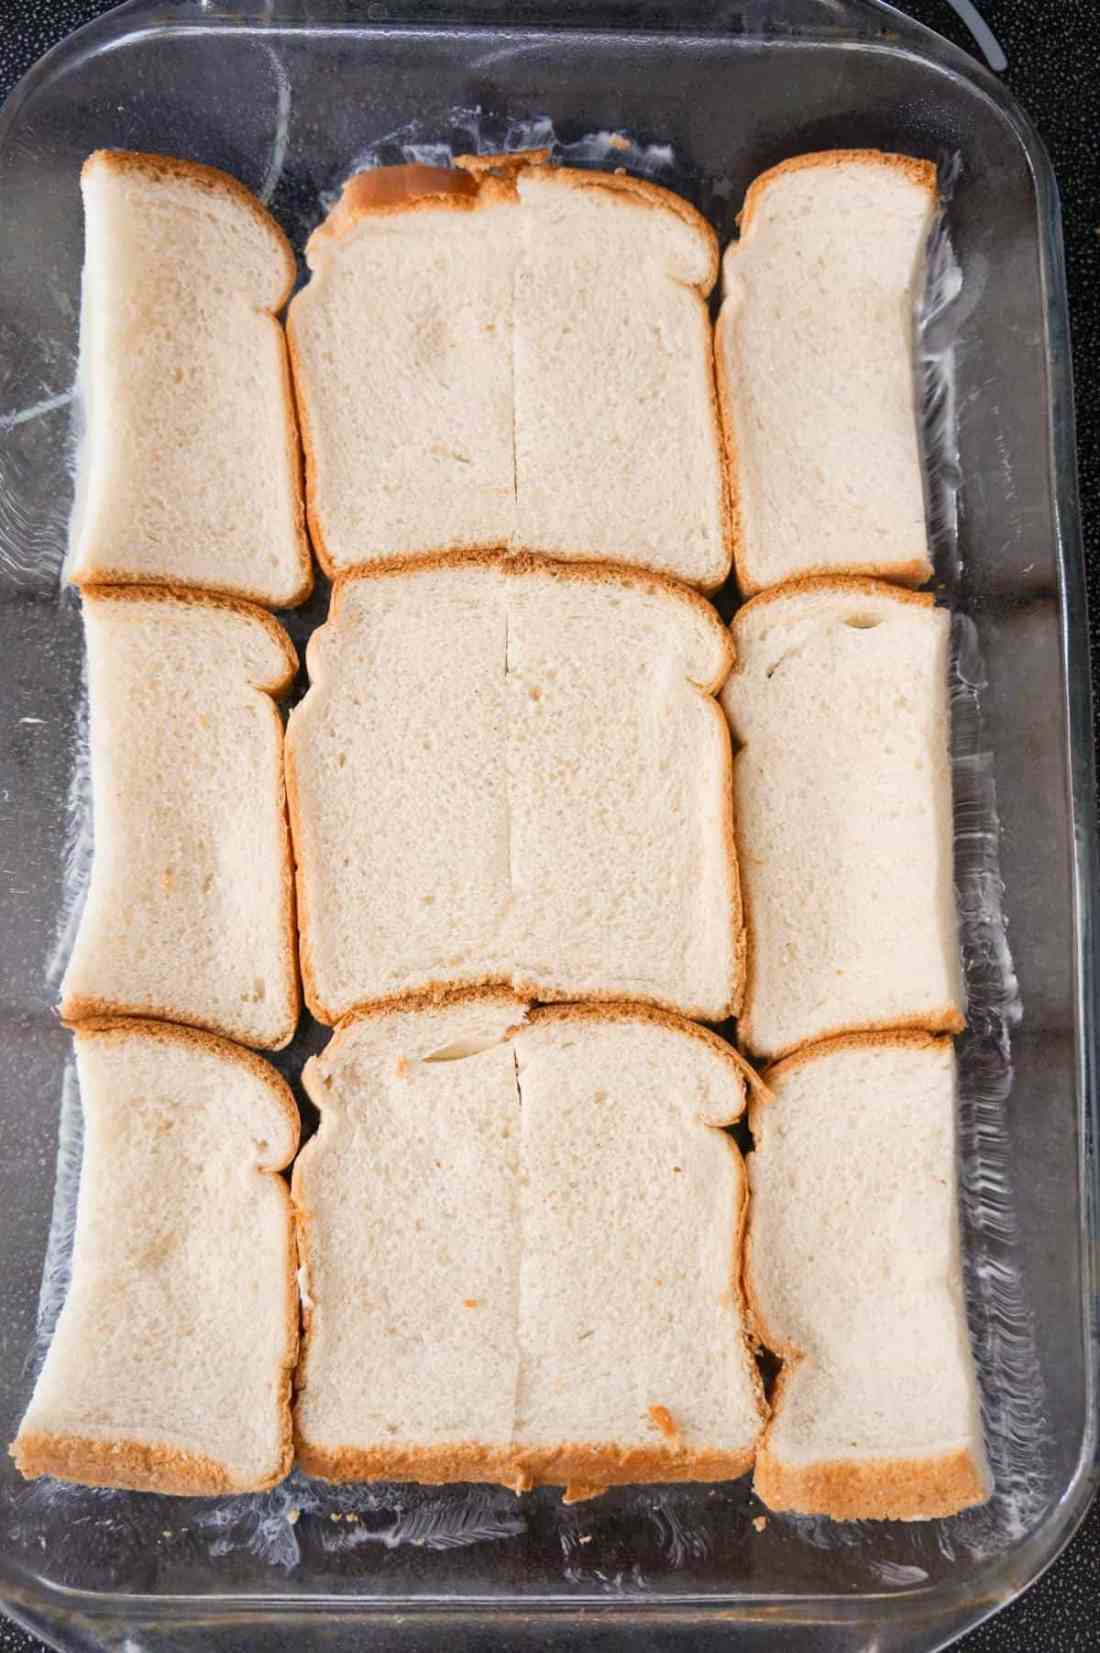 bread slices in the bottom of a baking dish